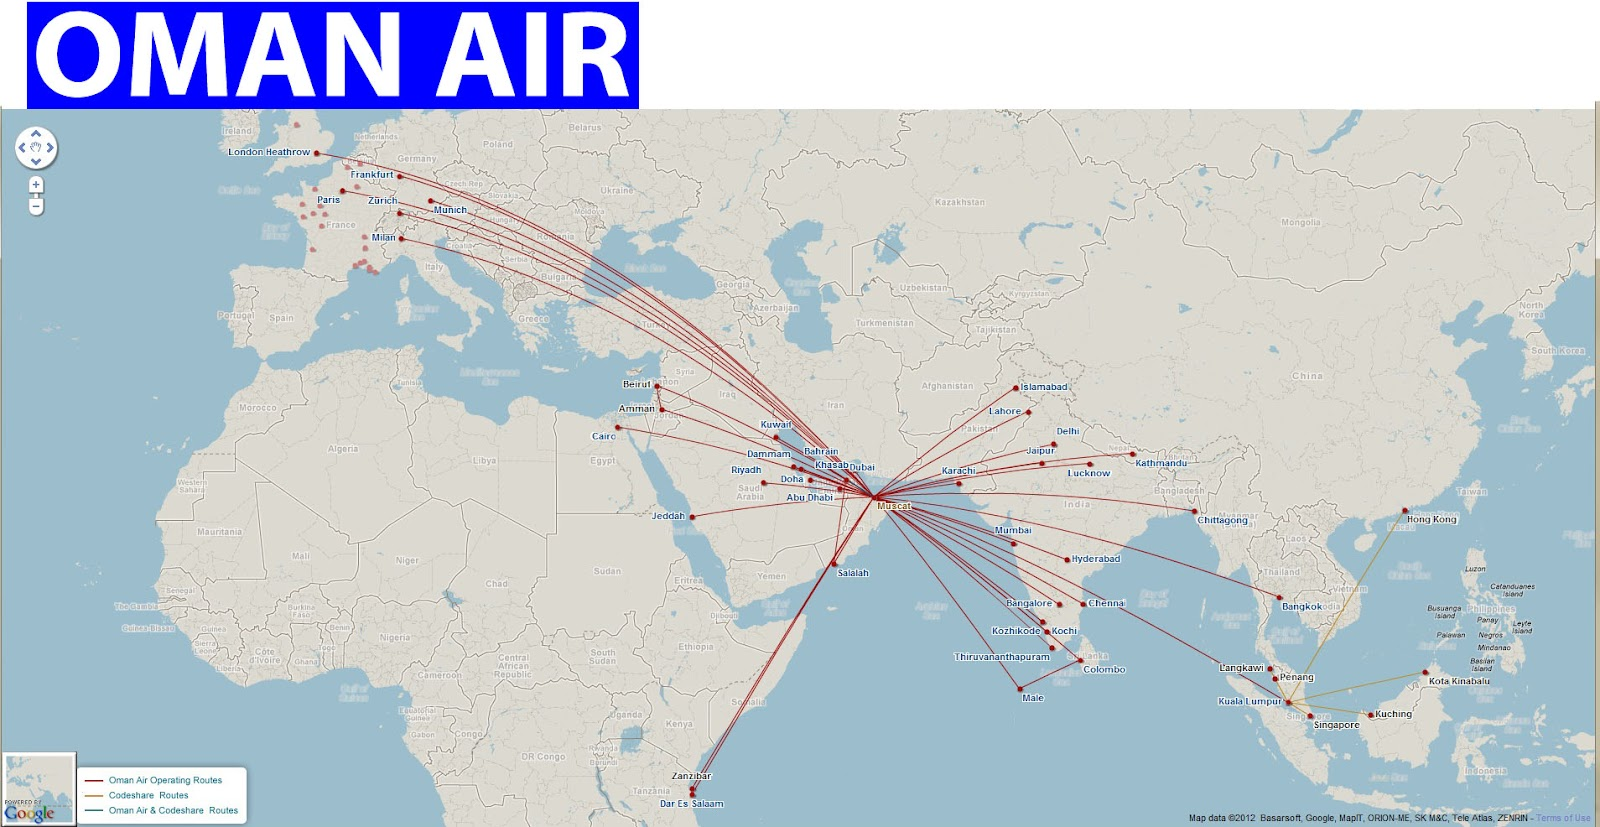 International flights oman air route map oman air route map oman air flights publicscrutiny